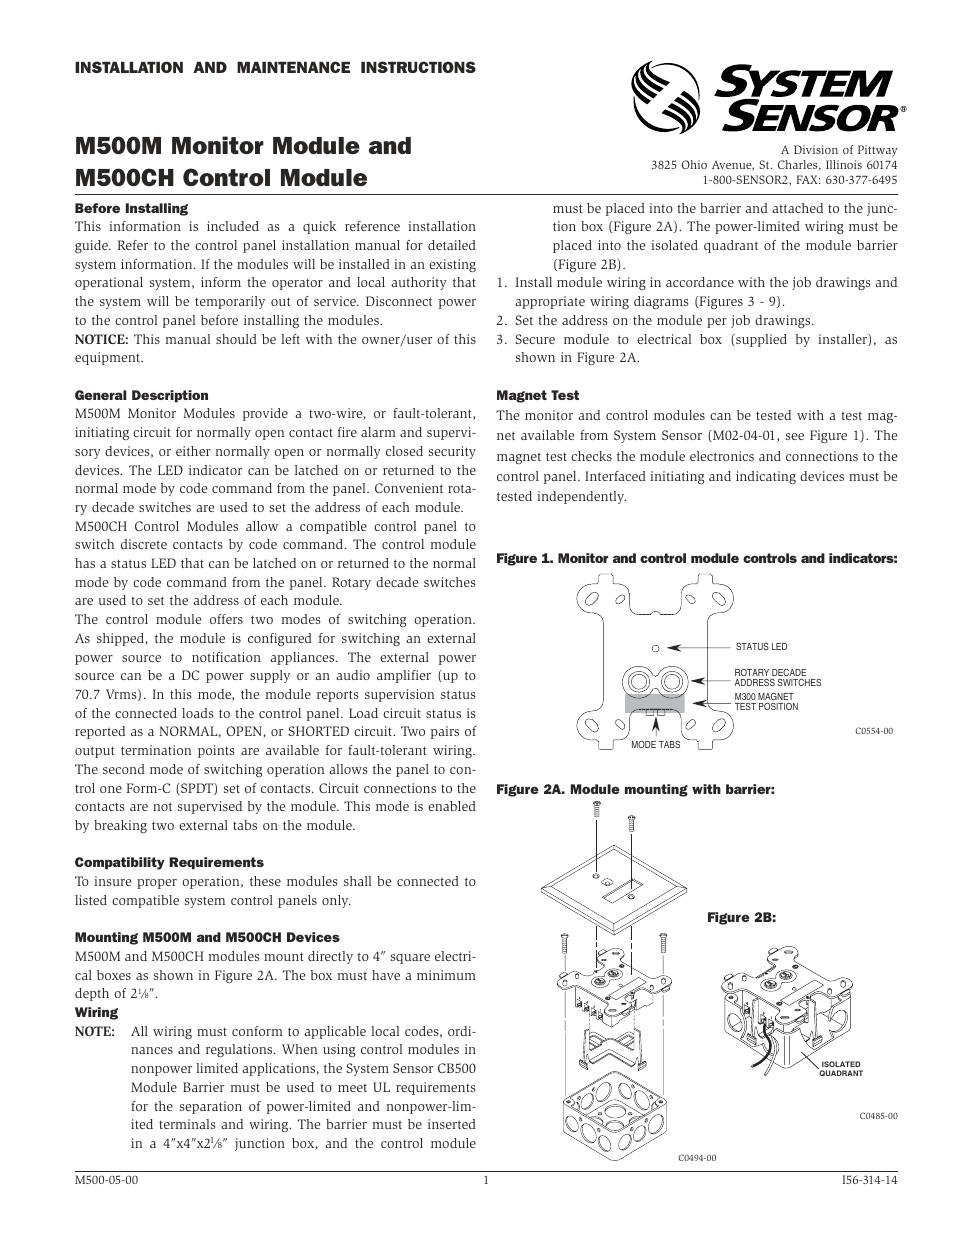 system sensor m500ch page1 system sensor m500ch user manual 4 pages 5R55E Transmission Wiring Diagram at bakdesigns.co